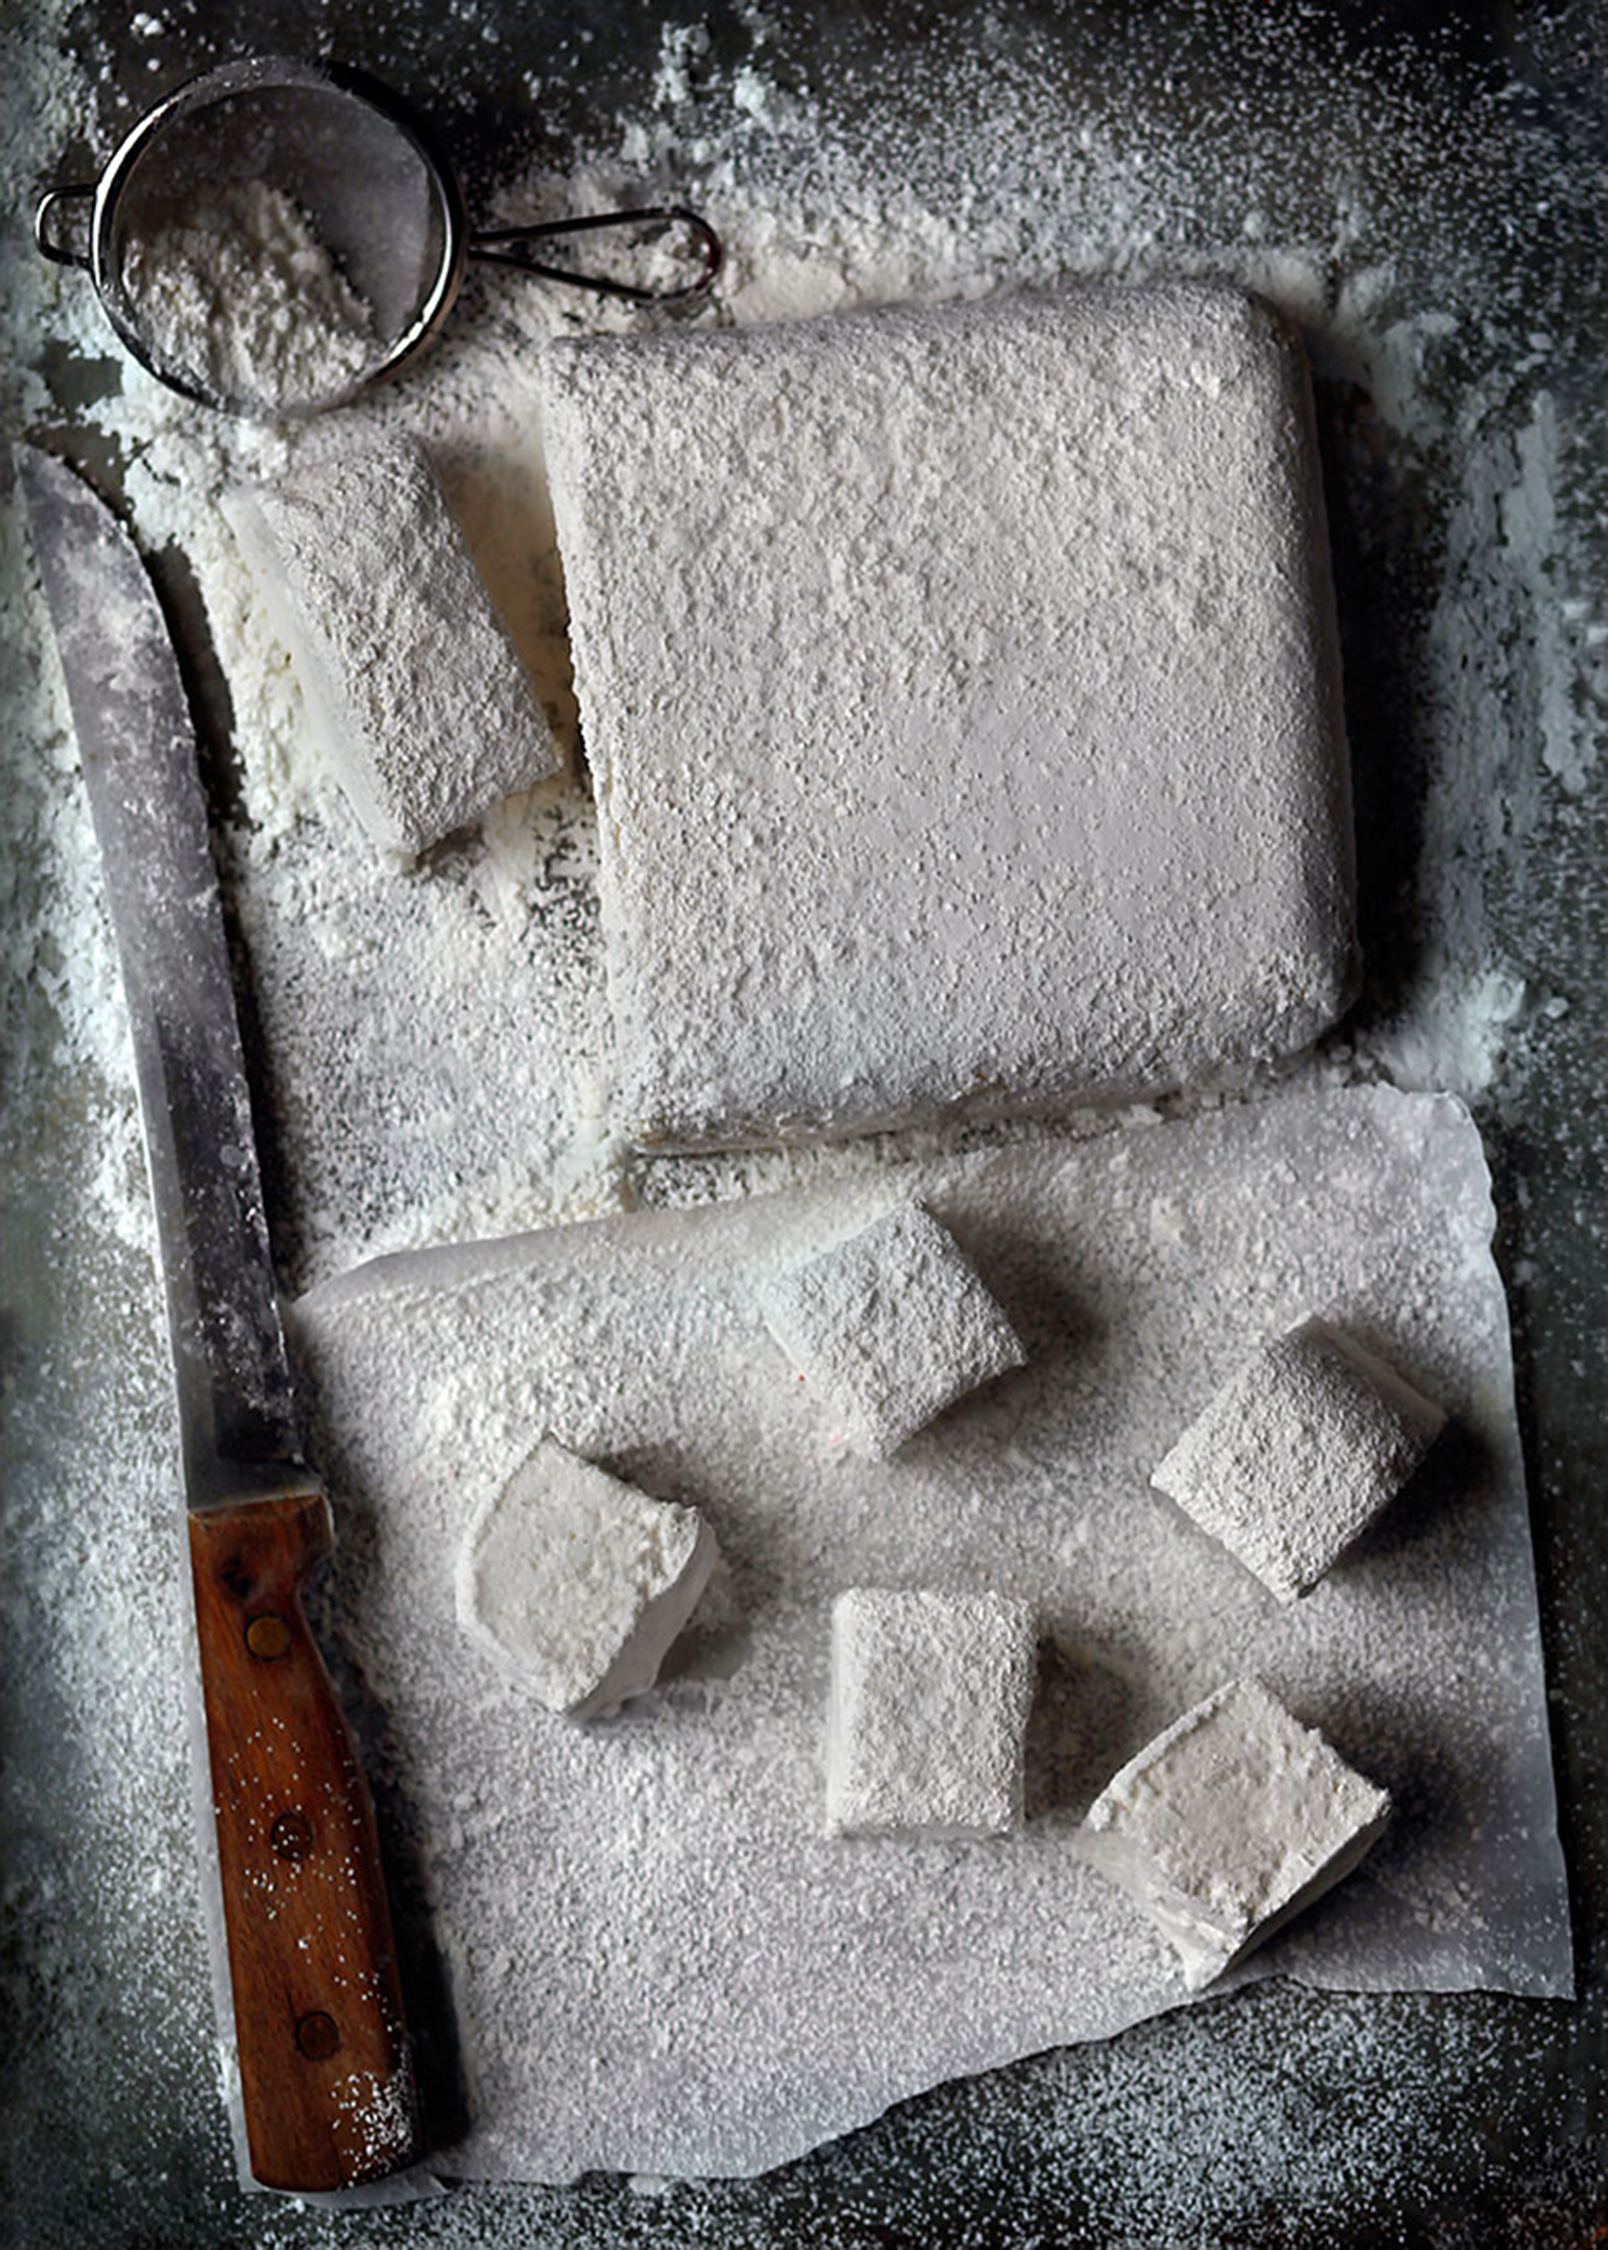 Julia Azzarello, food stylist,Marshmellow, Dante Ferris, Photographer